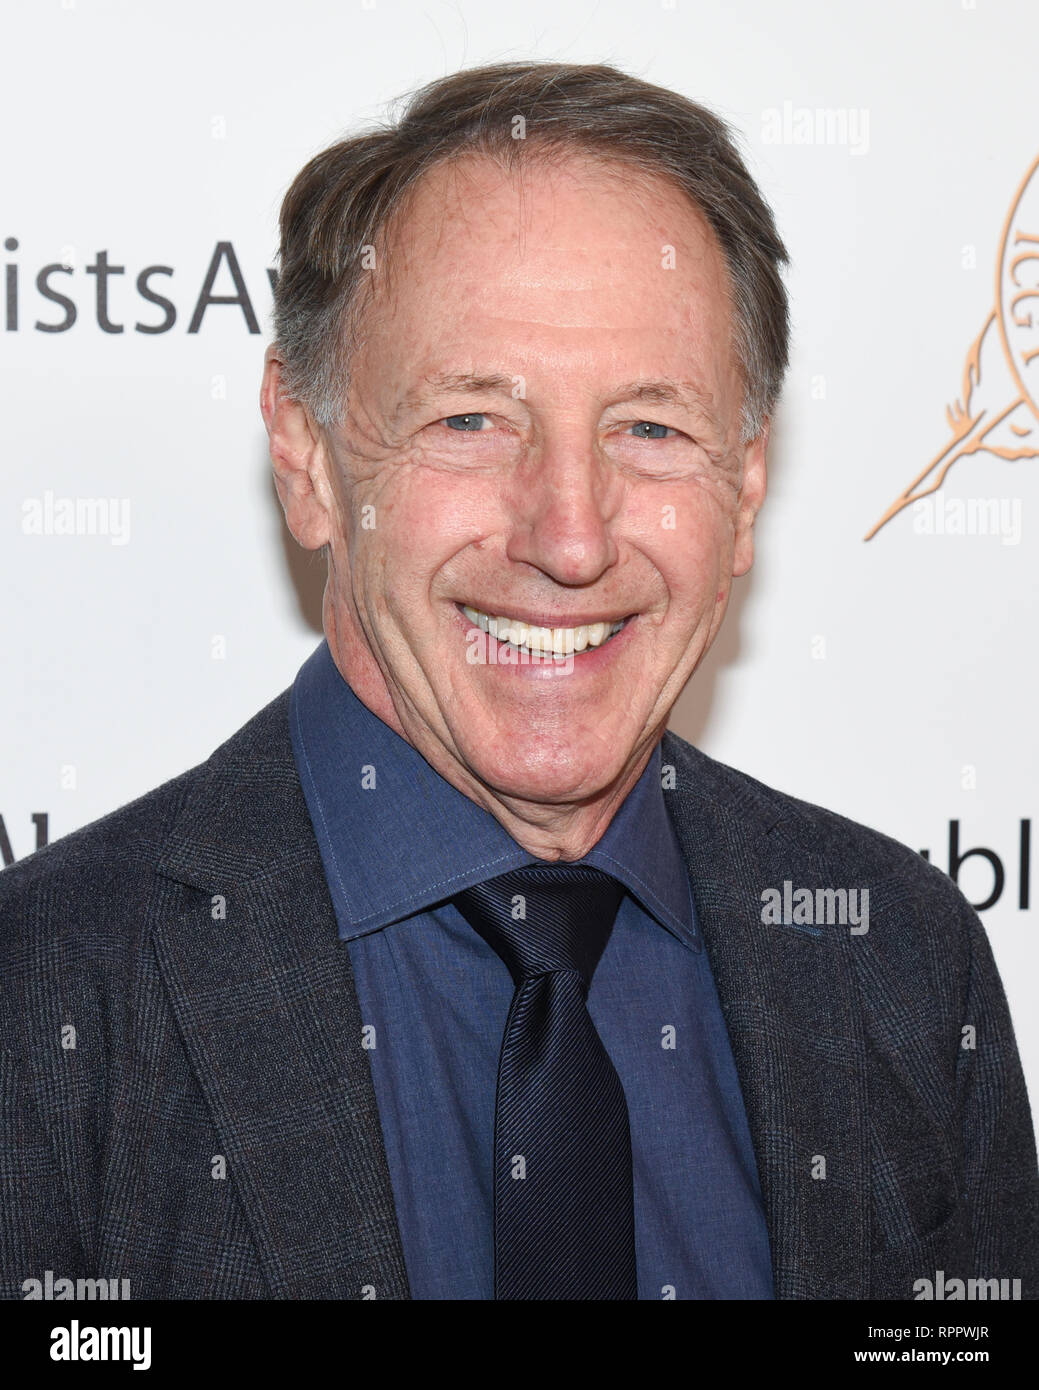 DENNIS DUGAN attends the 56th Annual ICG Publicist Awards at The Beverly Hilton Hotel in Beverly Hills, California. 22nd Feb, 2019. Credit: Billy Bennight/ZUMA Wire/Alamy Live News - Stock Image